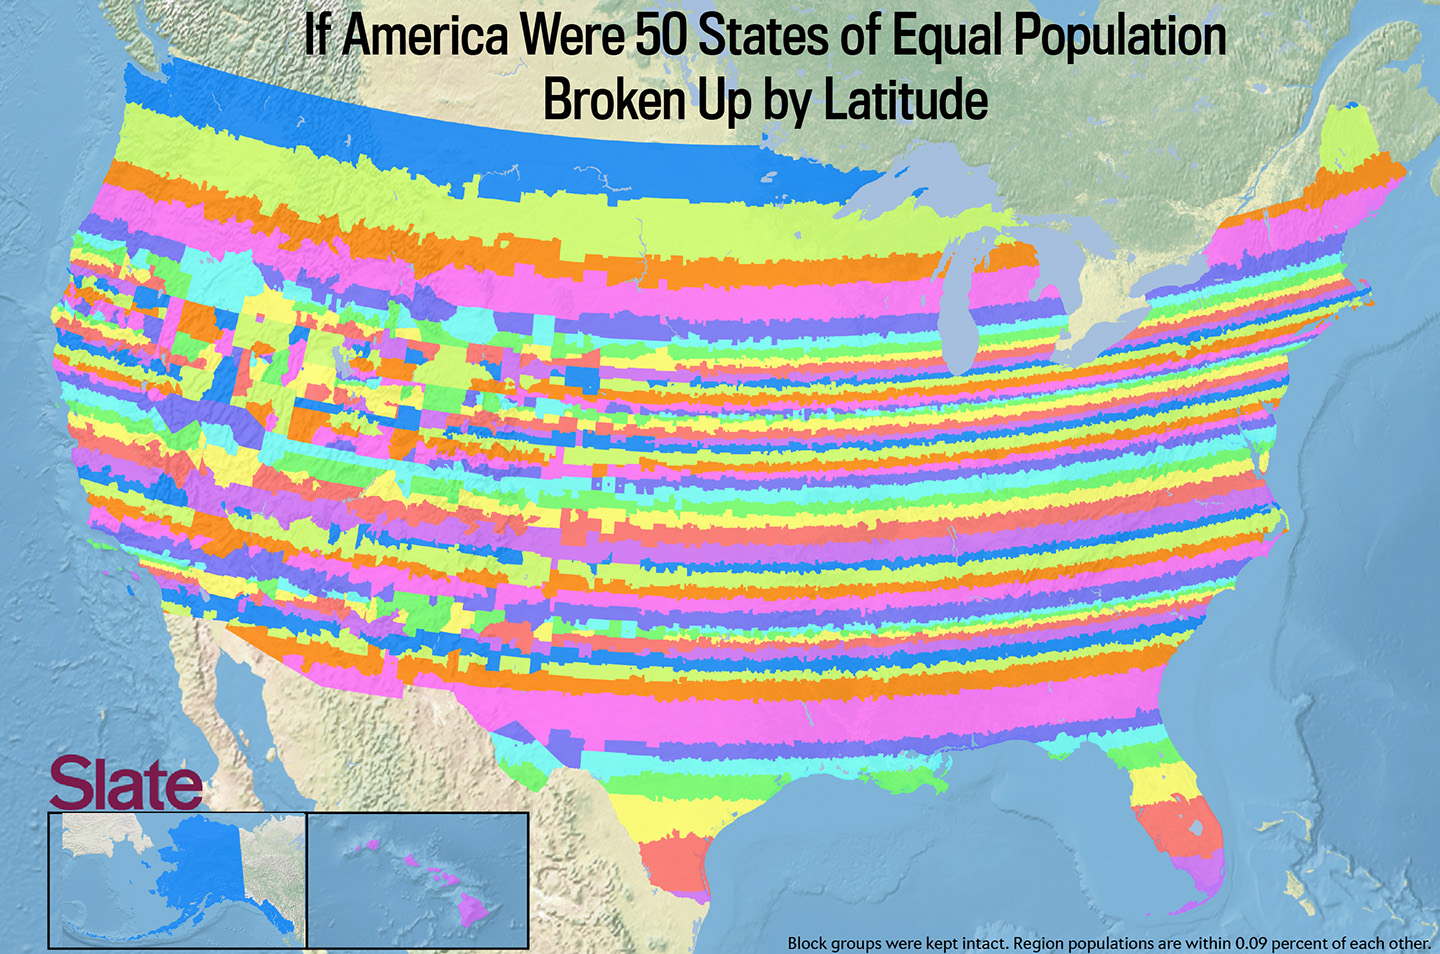 if every u.s. state had the same population, what would the map of